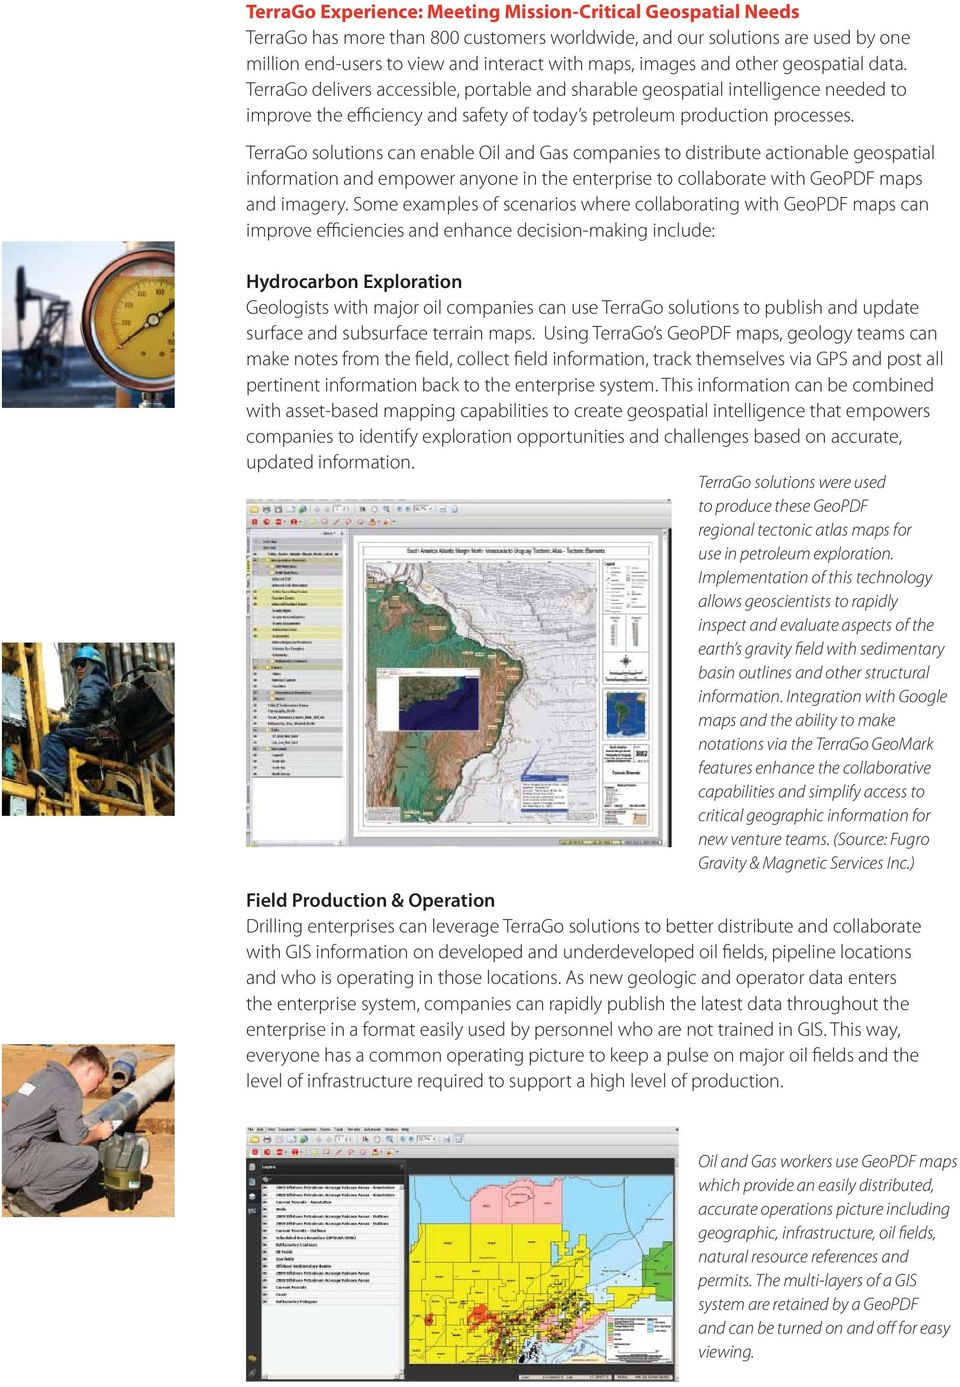 TerraGo solutions can enable Oil and Gas companies to distribute actionable geospatial information and empower anyone in the enterprise to collaborate with GeoPDF maps and imagery.